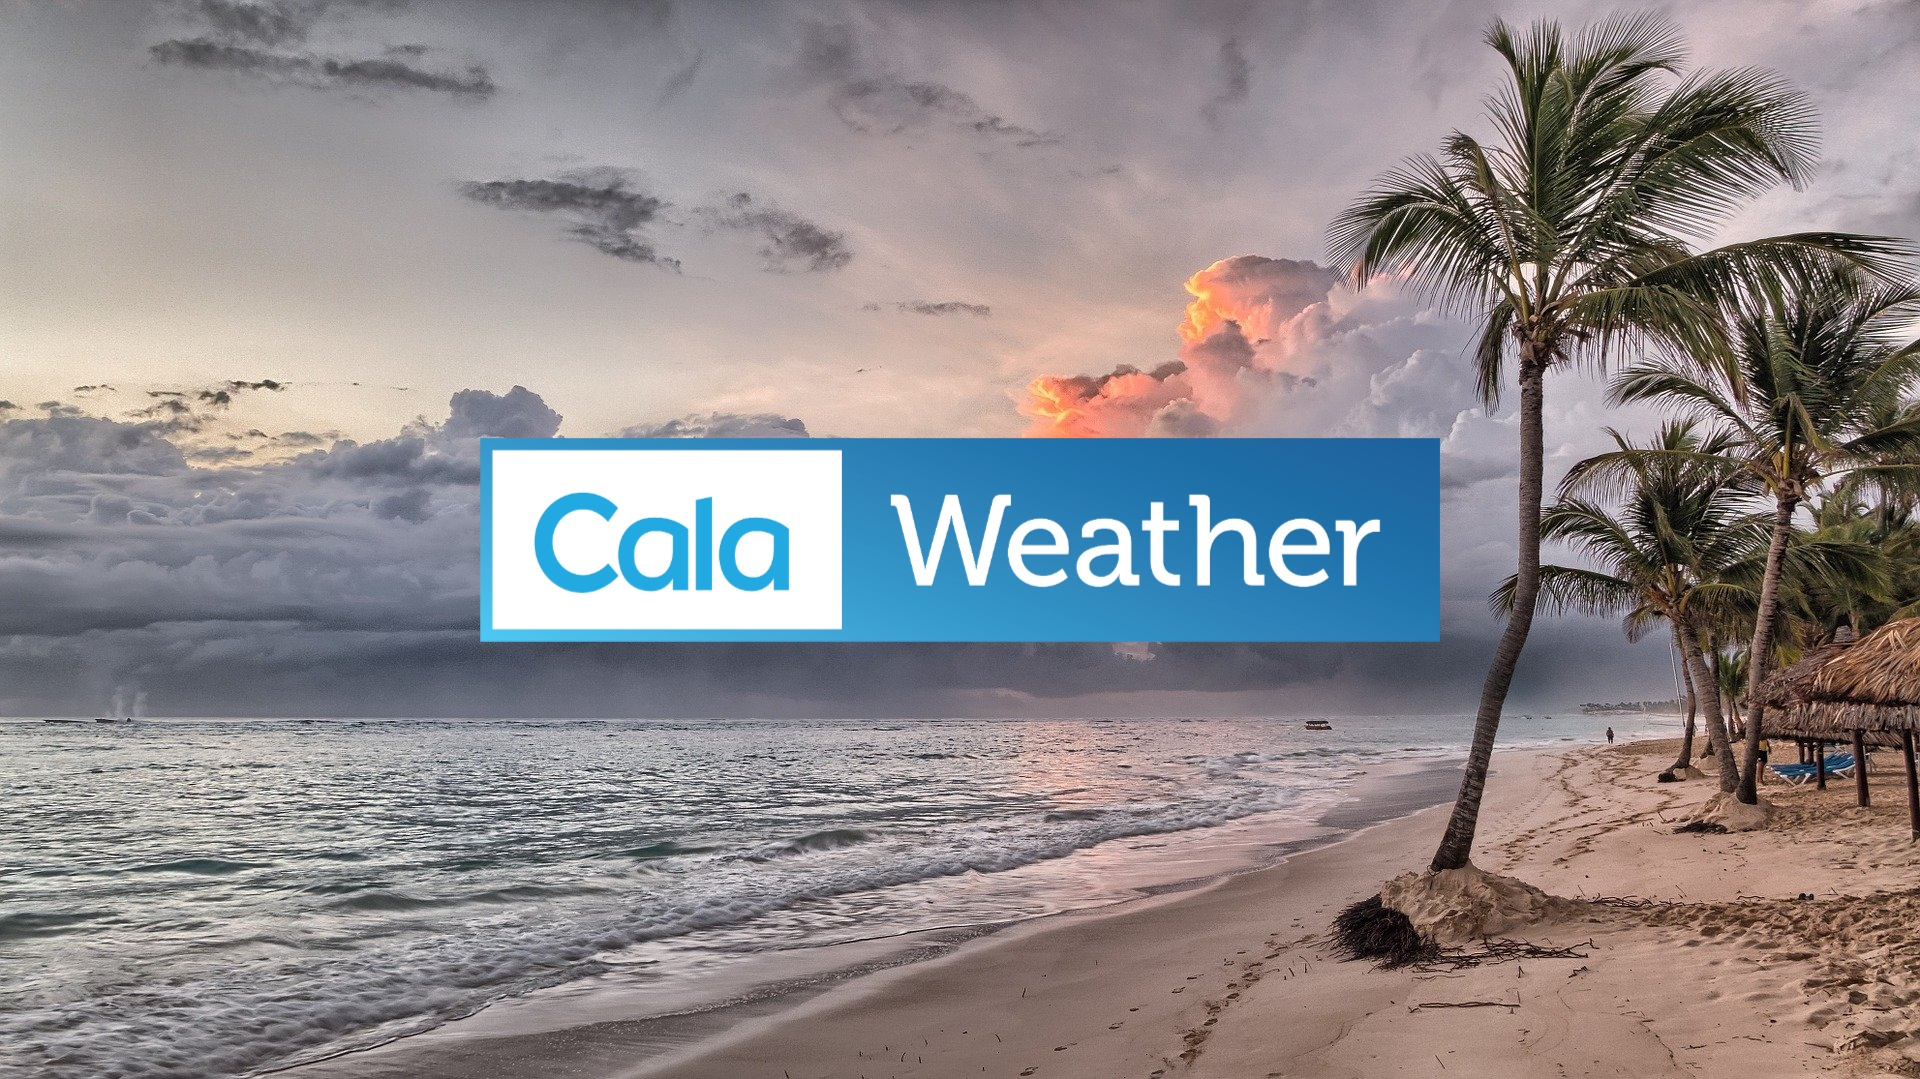 caribbean beach with calaweather logo